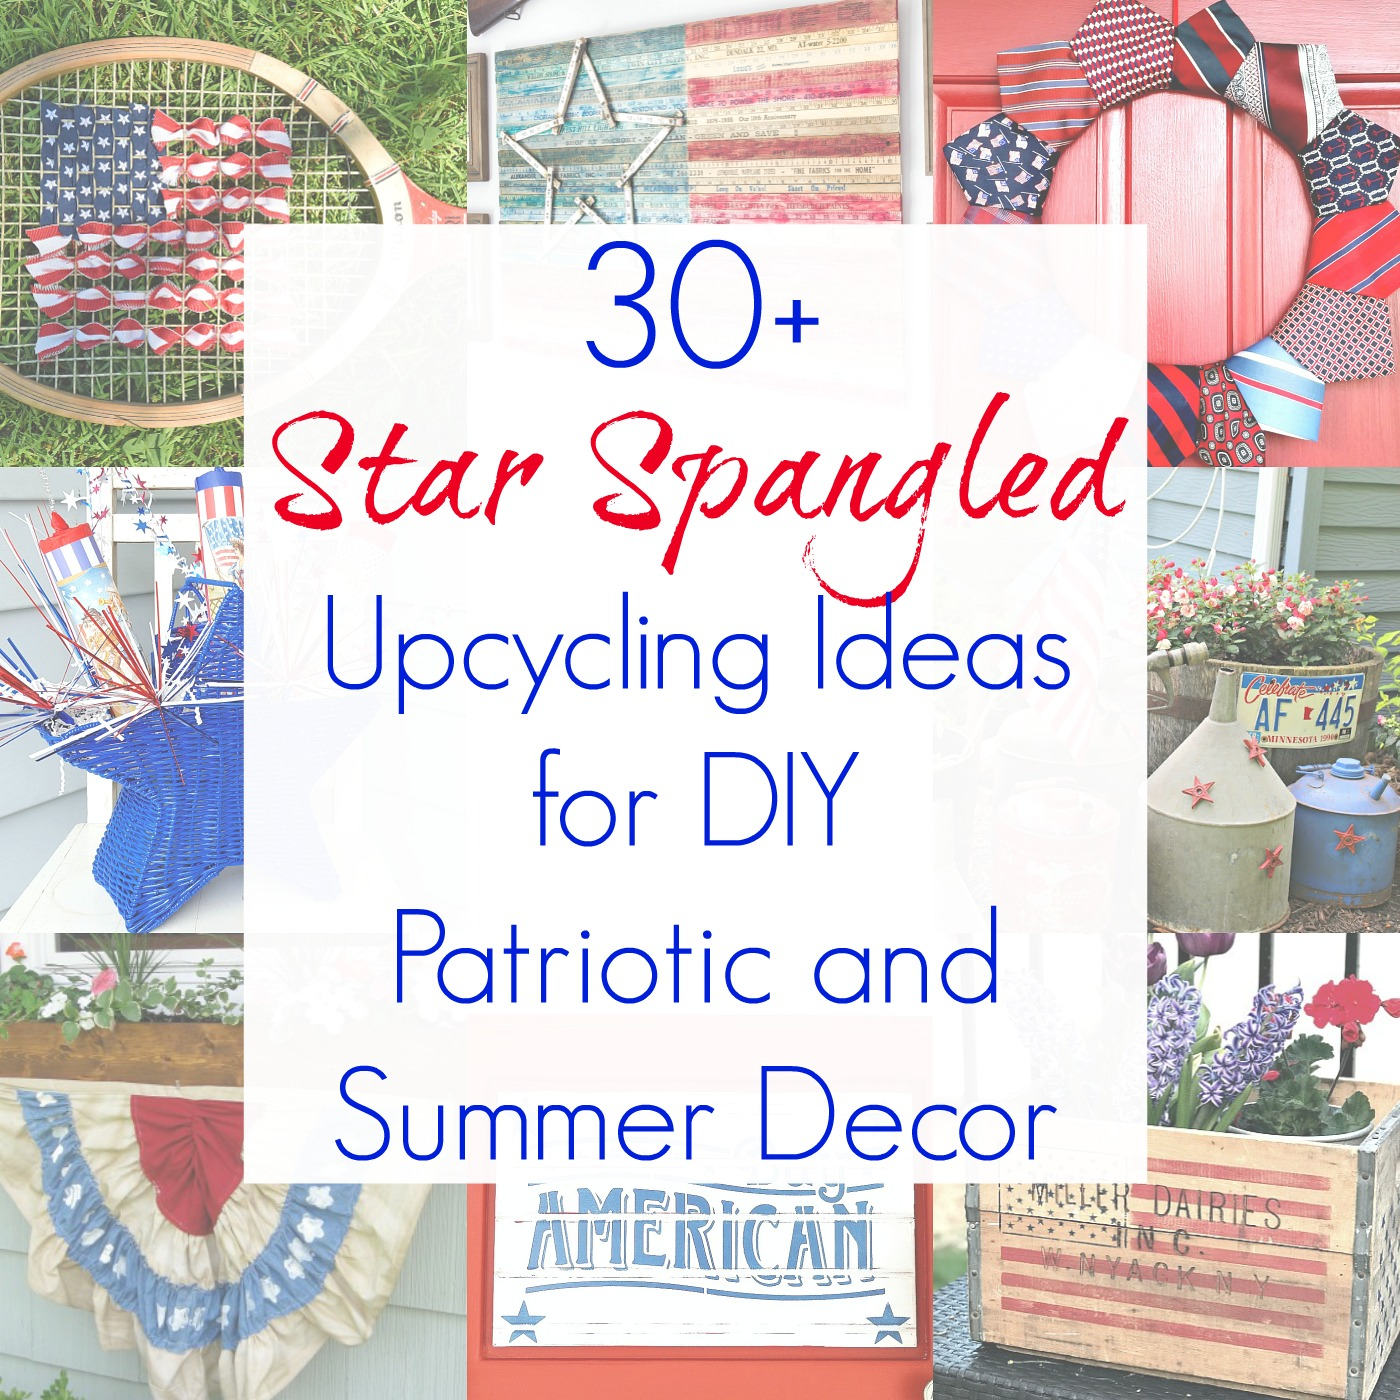 Upcycling Ideas for Patriotic Decor and Independence Day Decorations